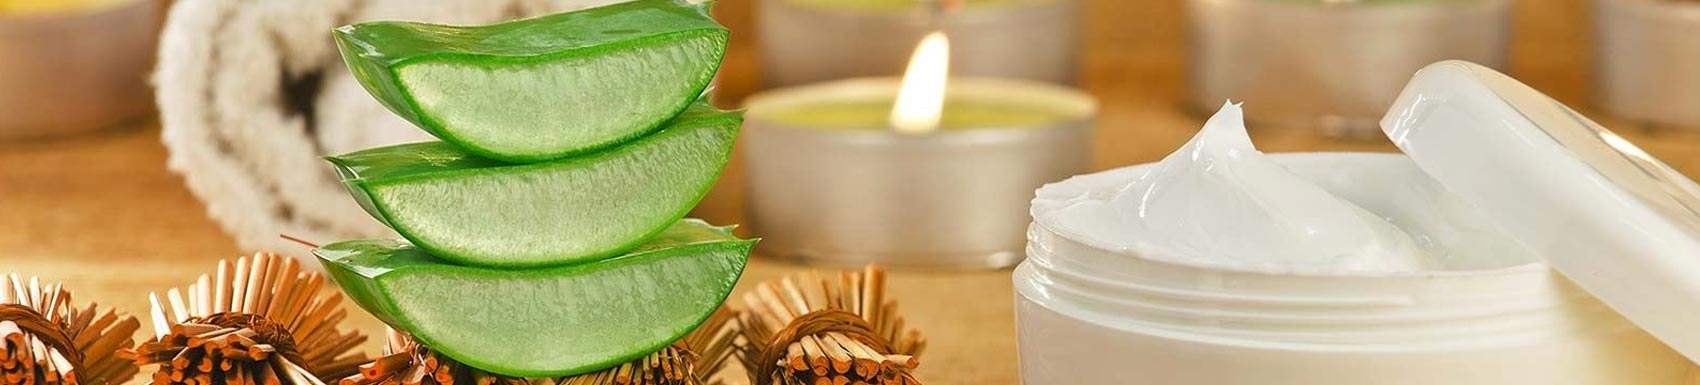 SENZA Hotel, Napa offers Spa Packages